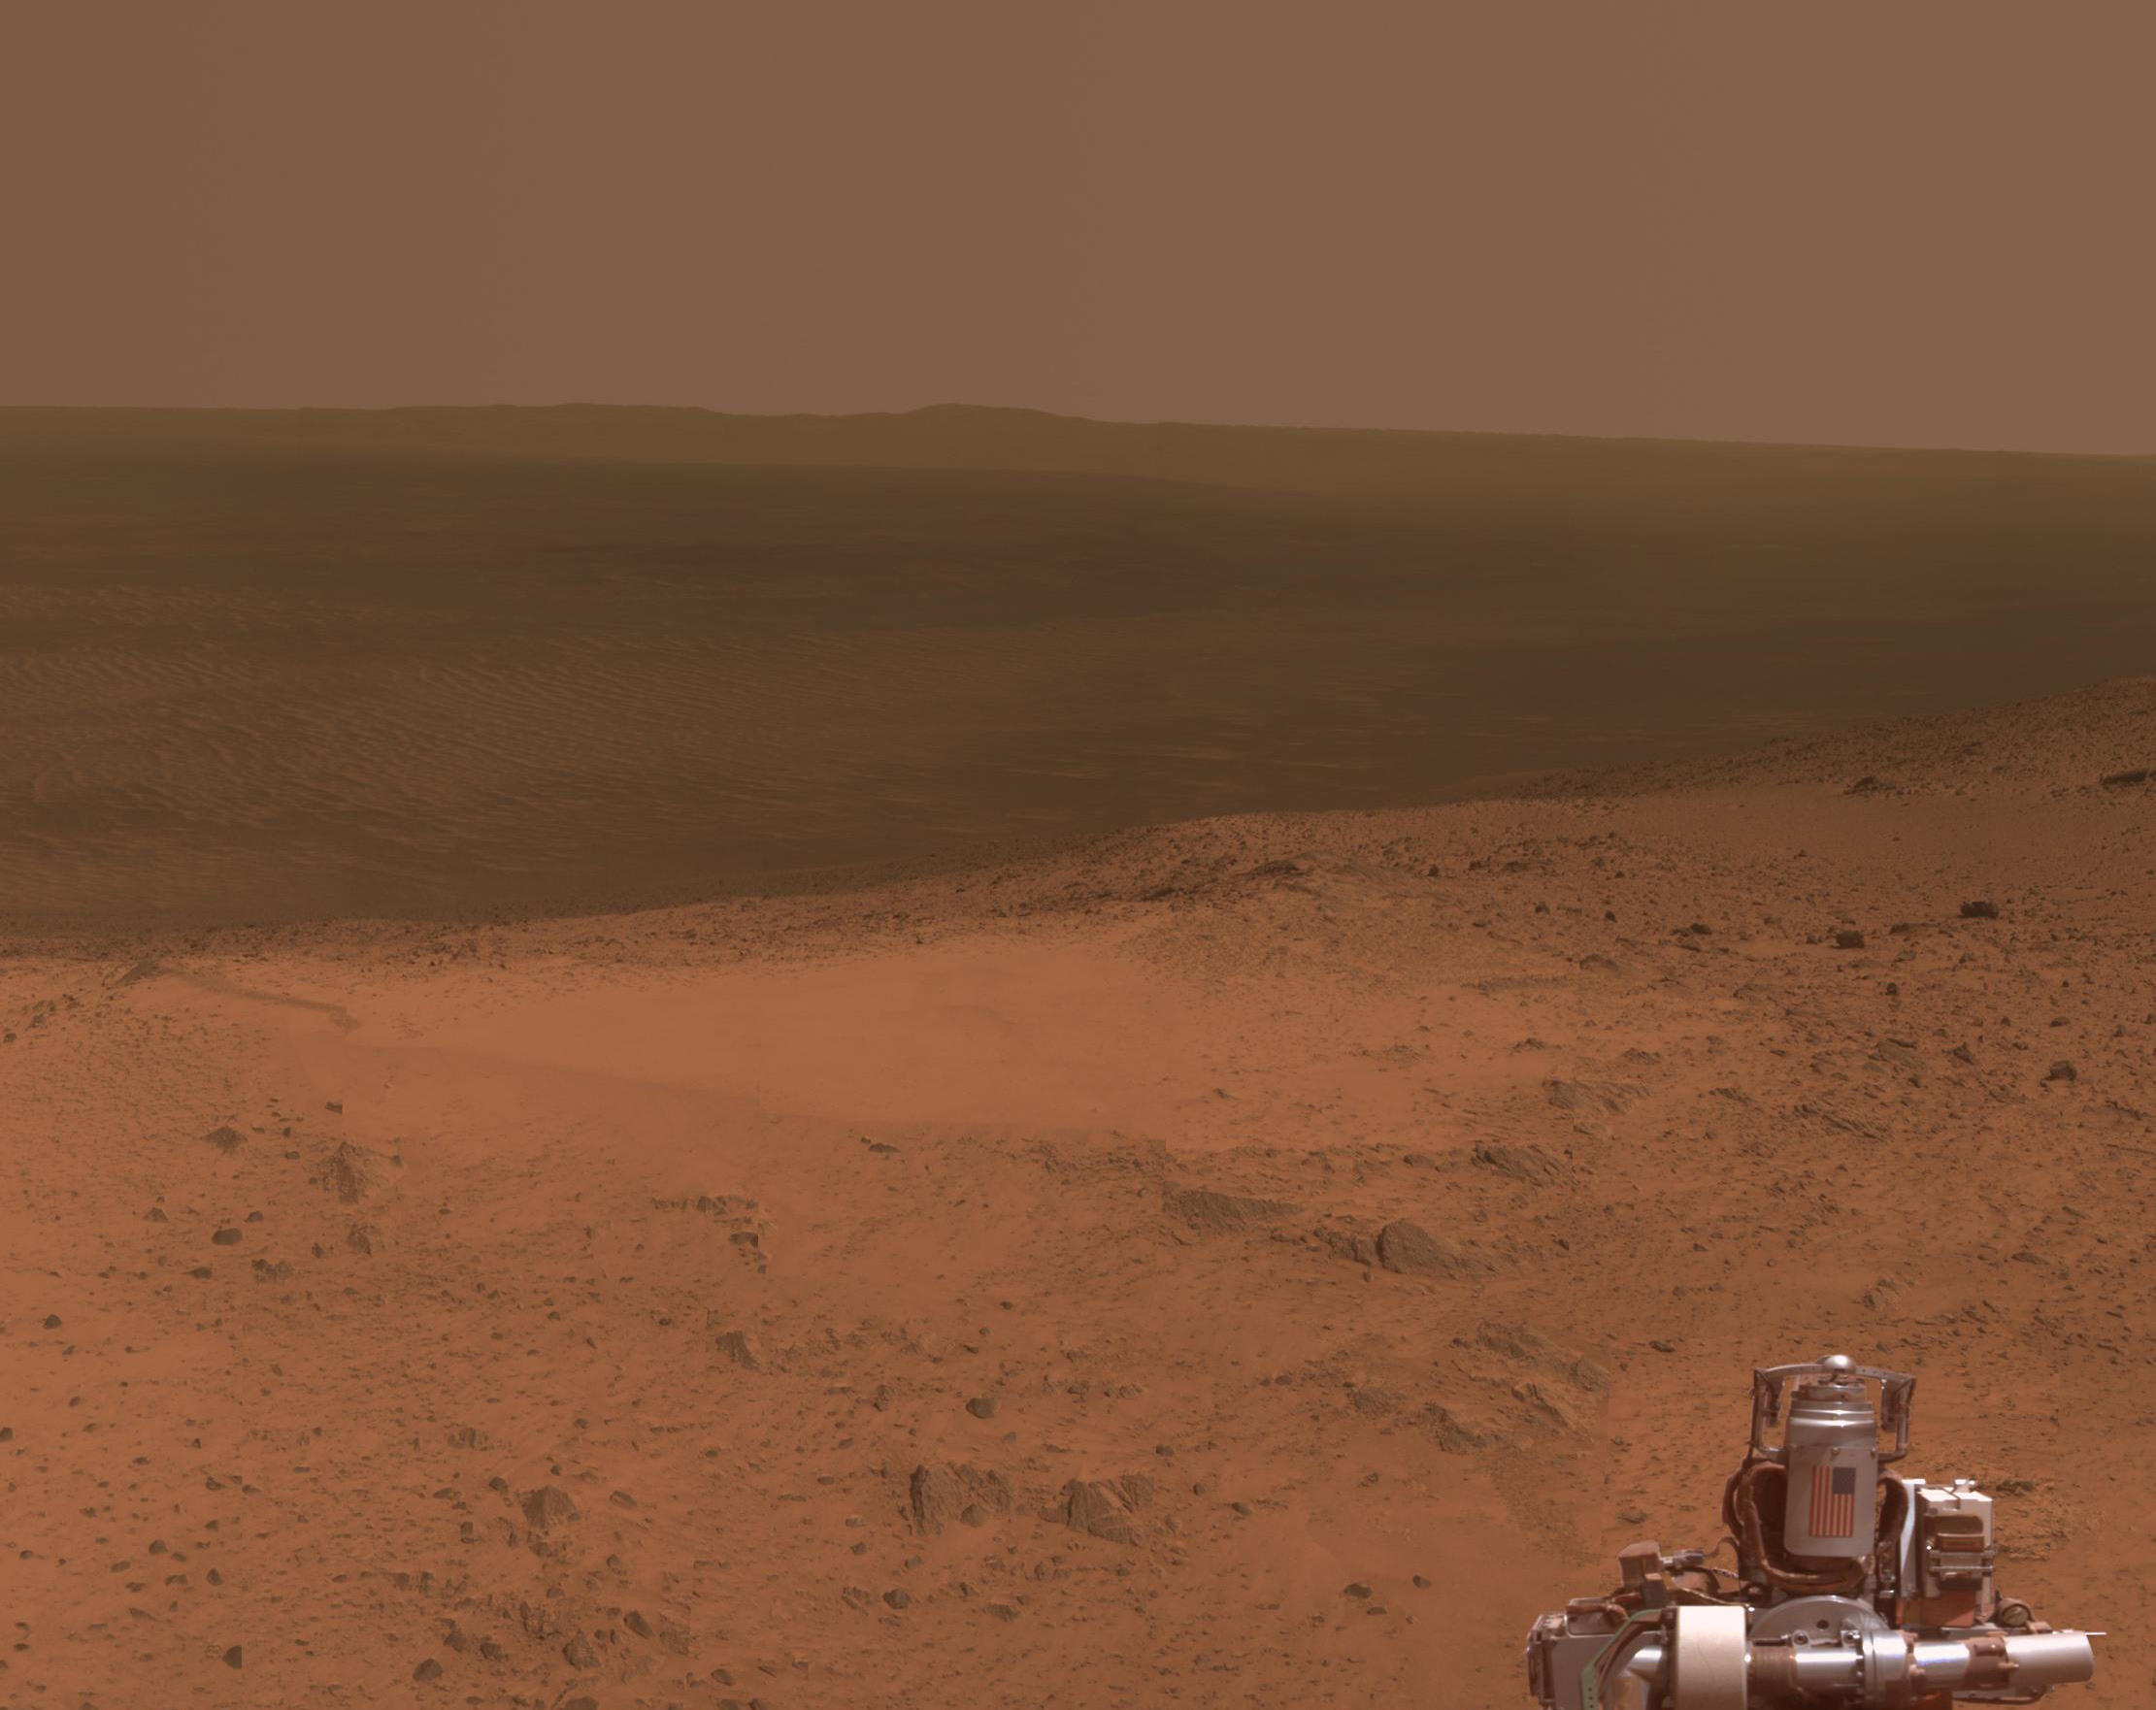 Opportunity Celebrates 11 Years on Mars With a Grand Panorama